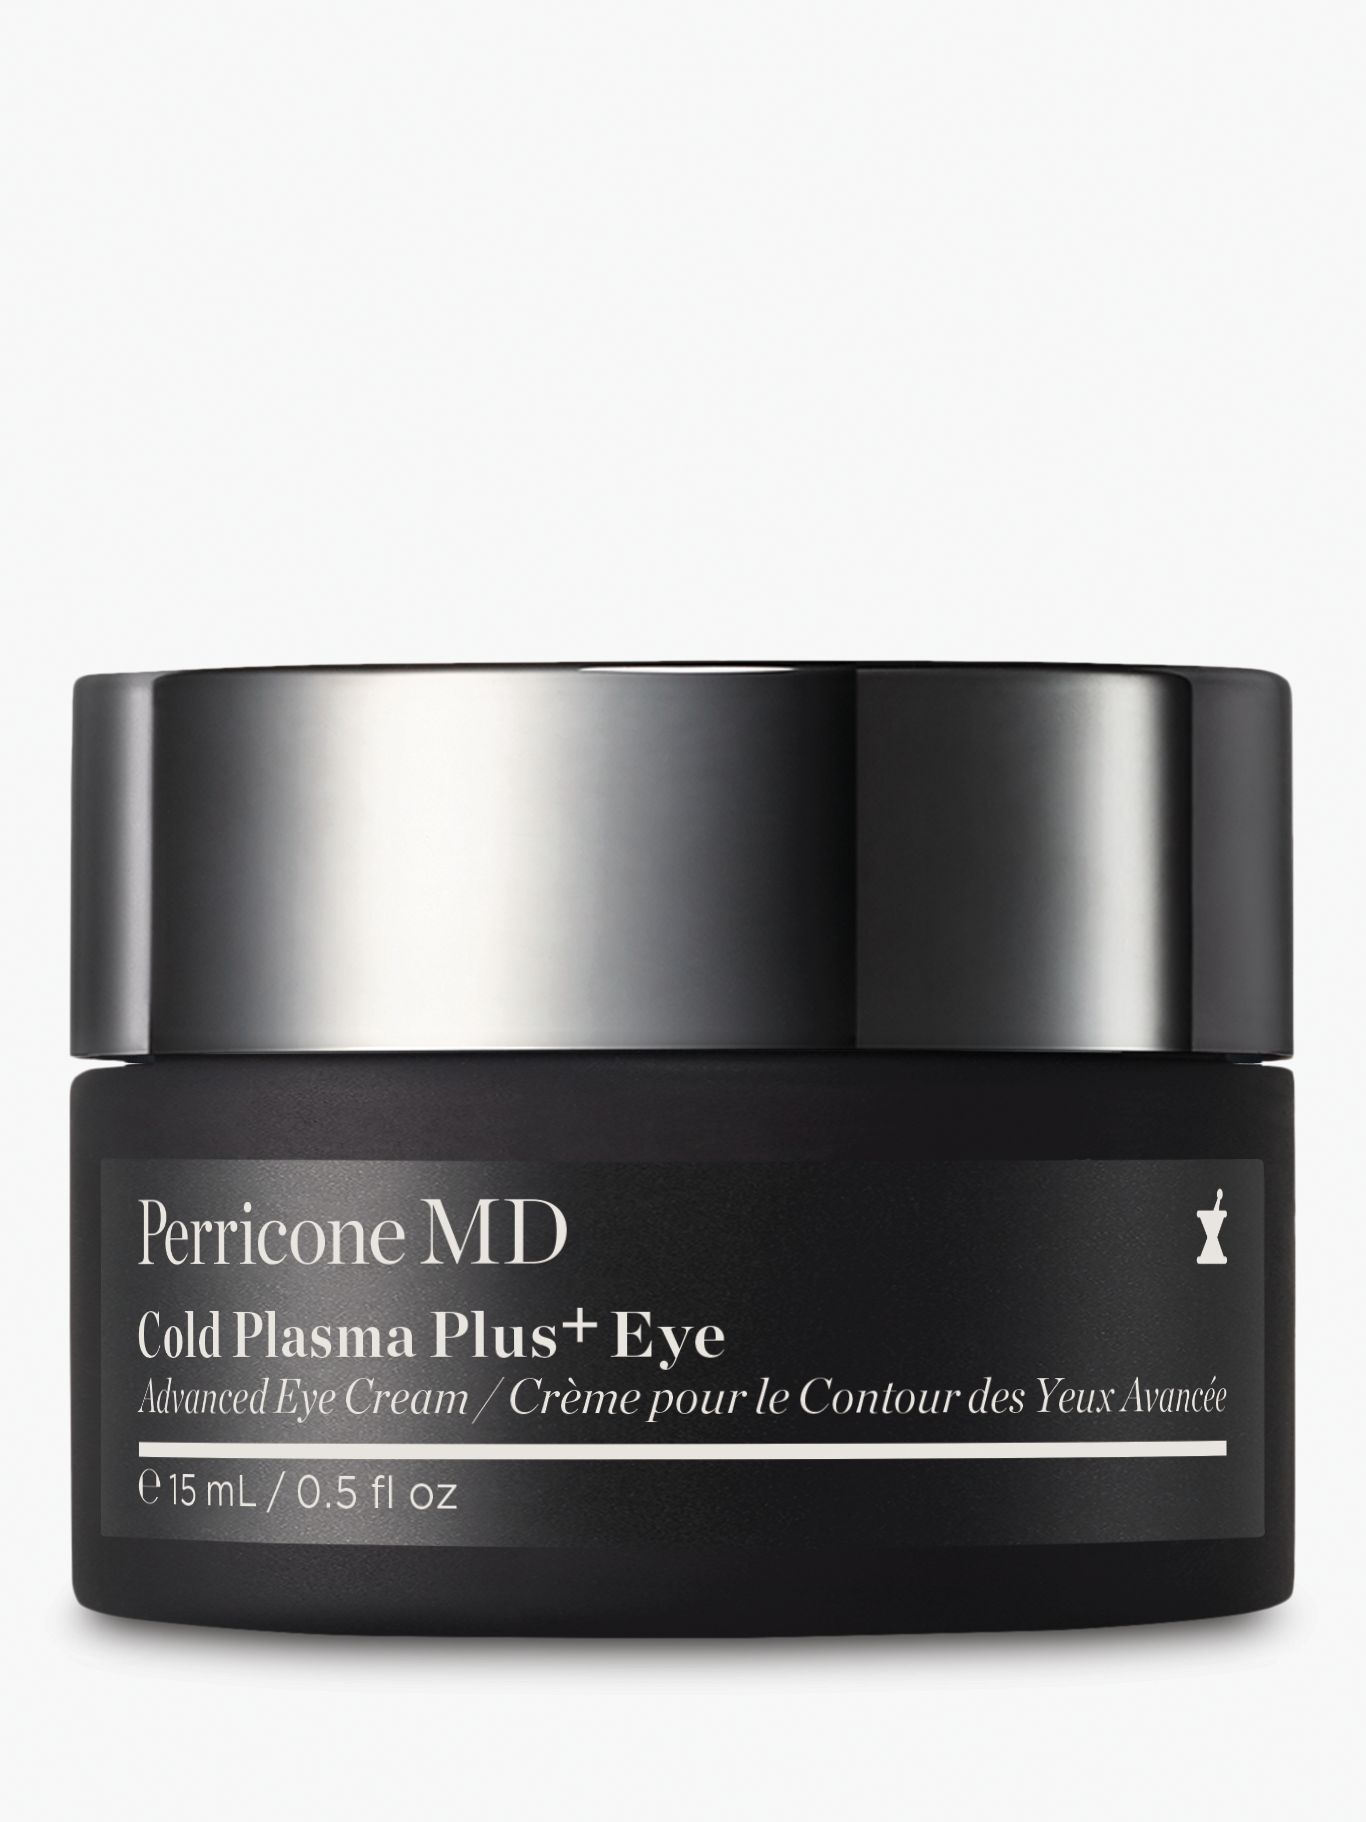 Perricone MD Perricone MD Cold Plasma Plus+ Advanced Eye Cream, 15ml